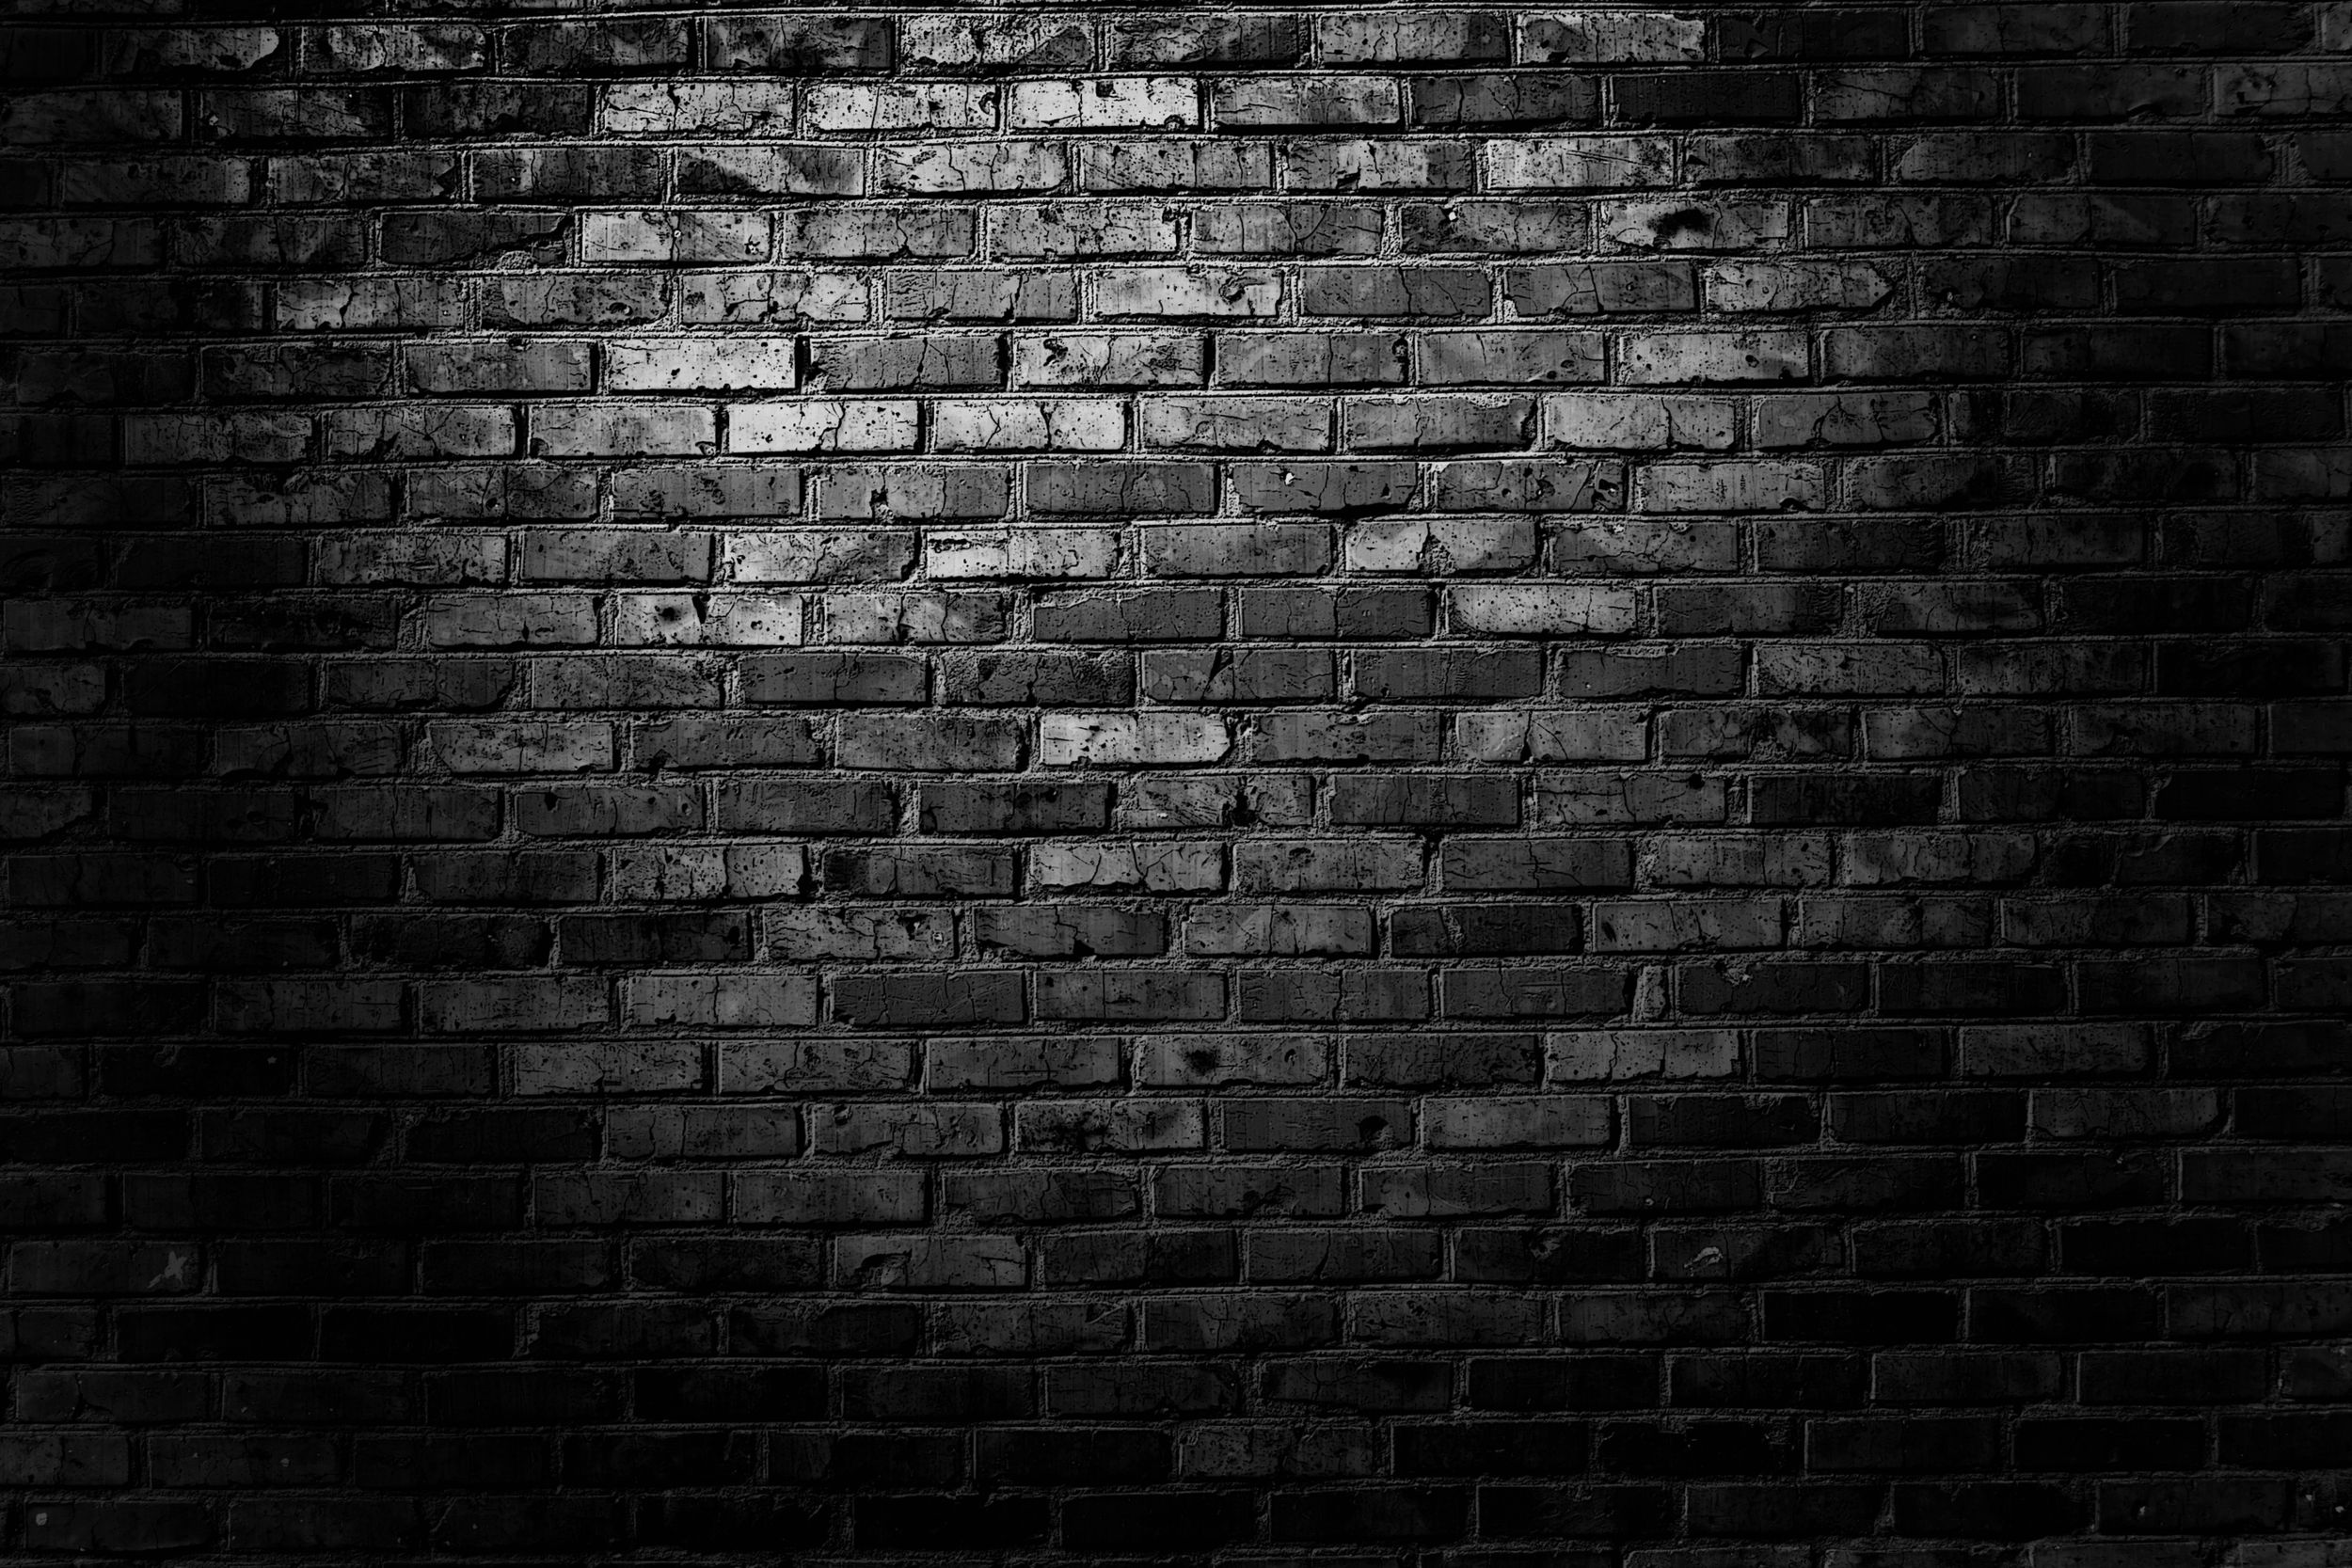 2500x1667 Black Brick Wall Wallpaper Hd Dark For Mobile High Quality Great ...